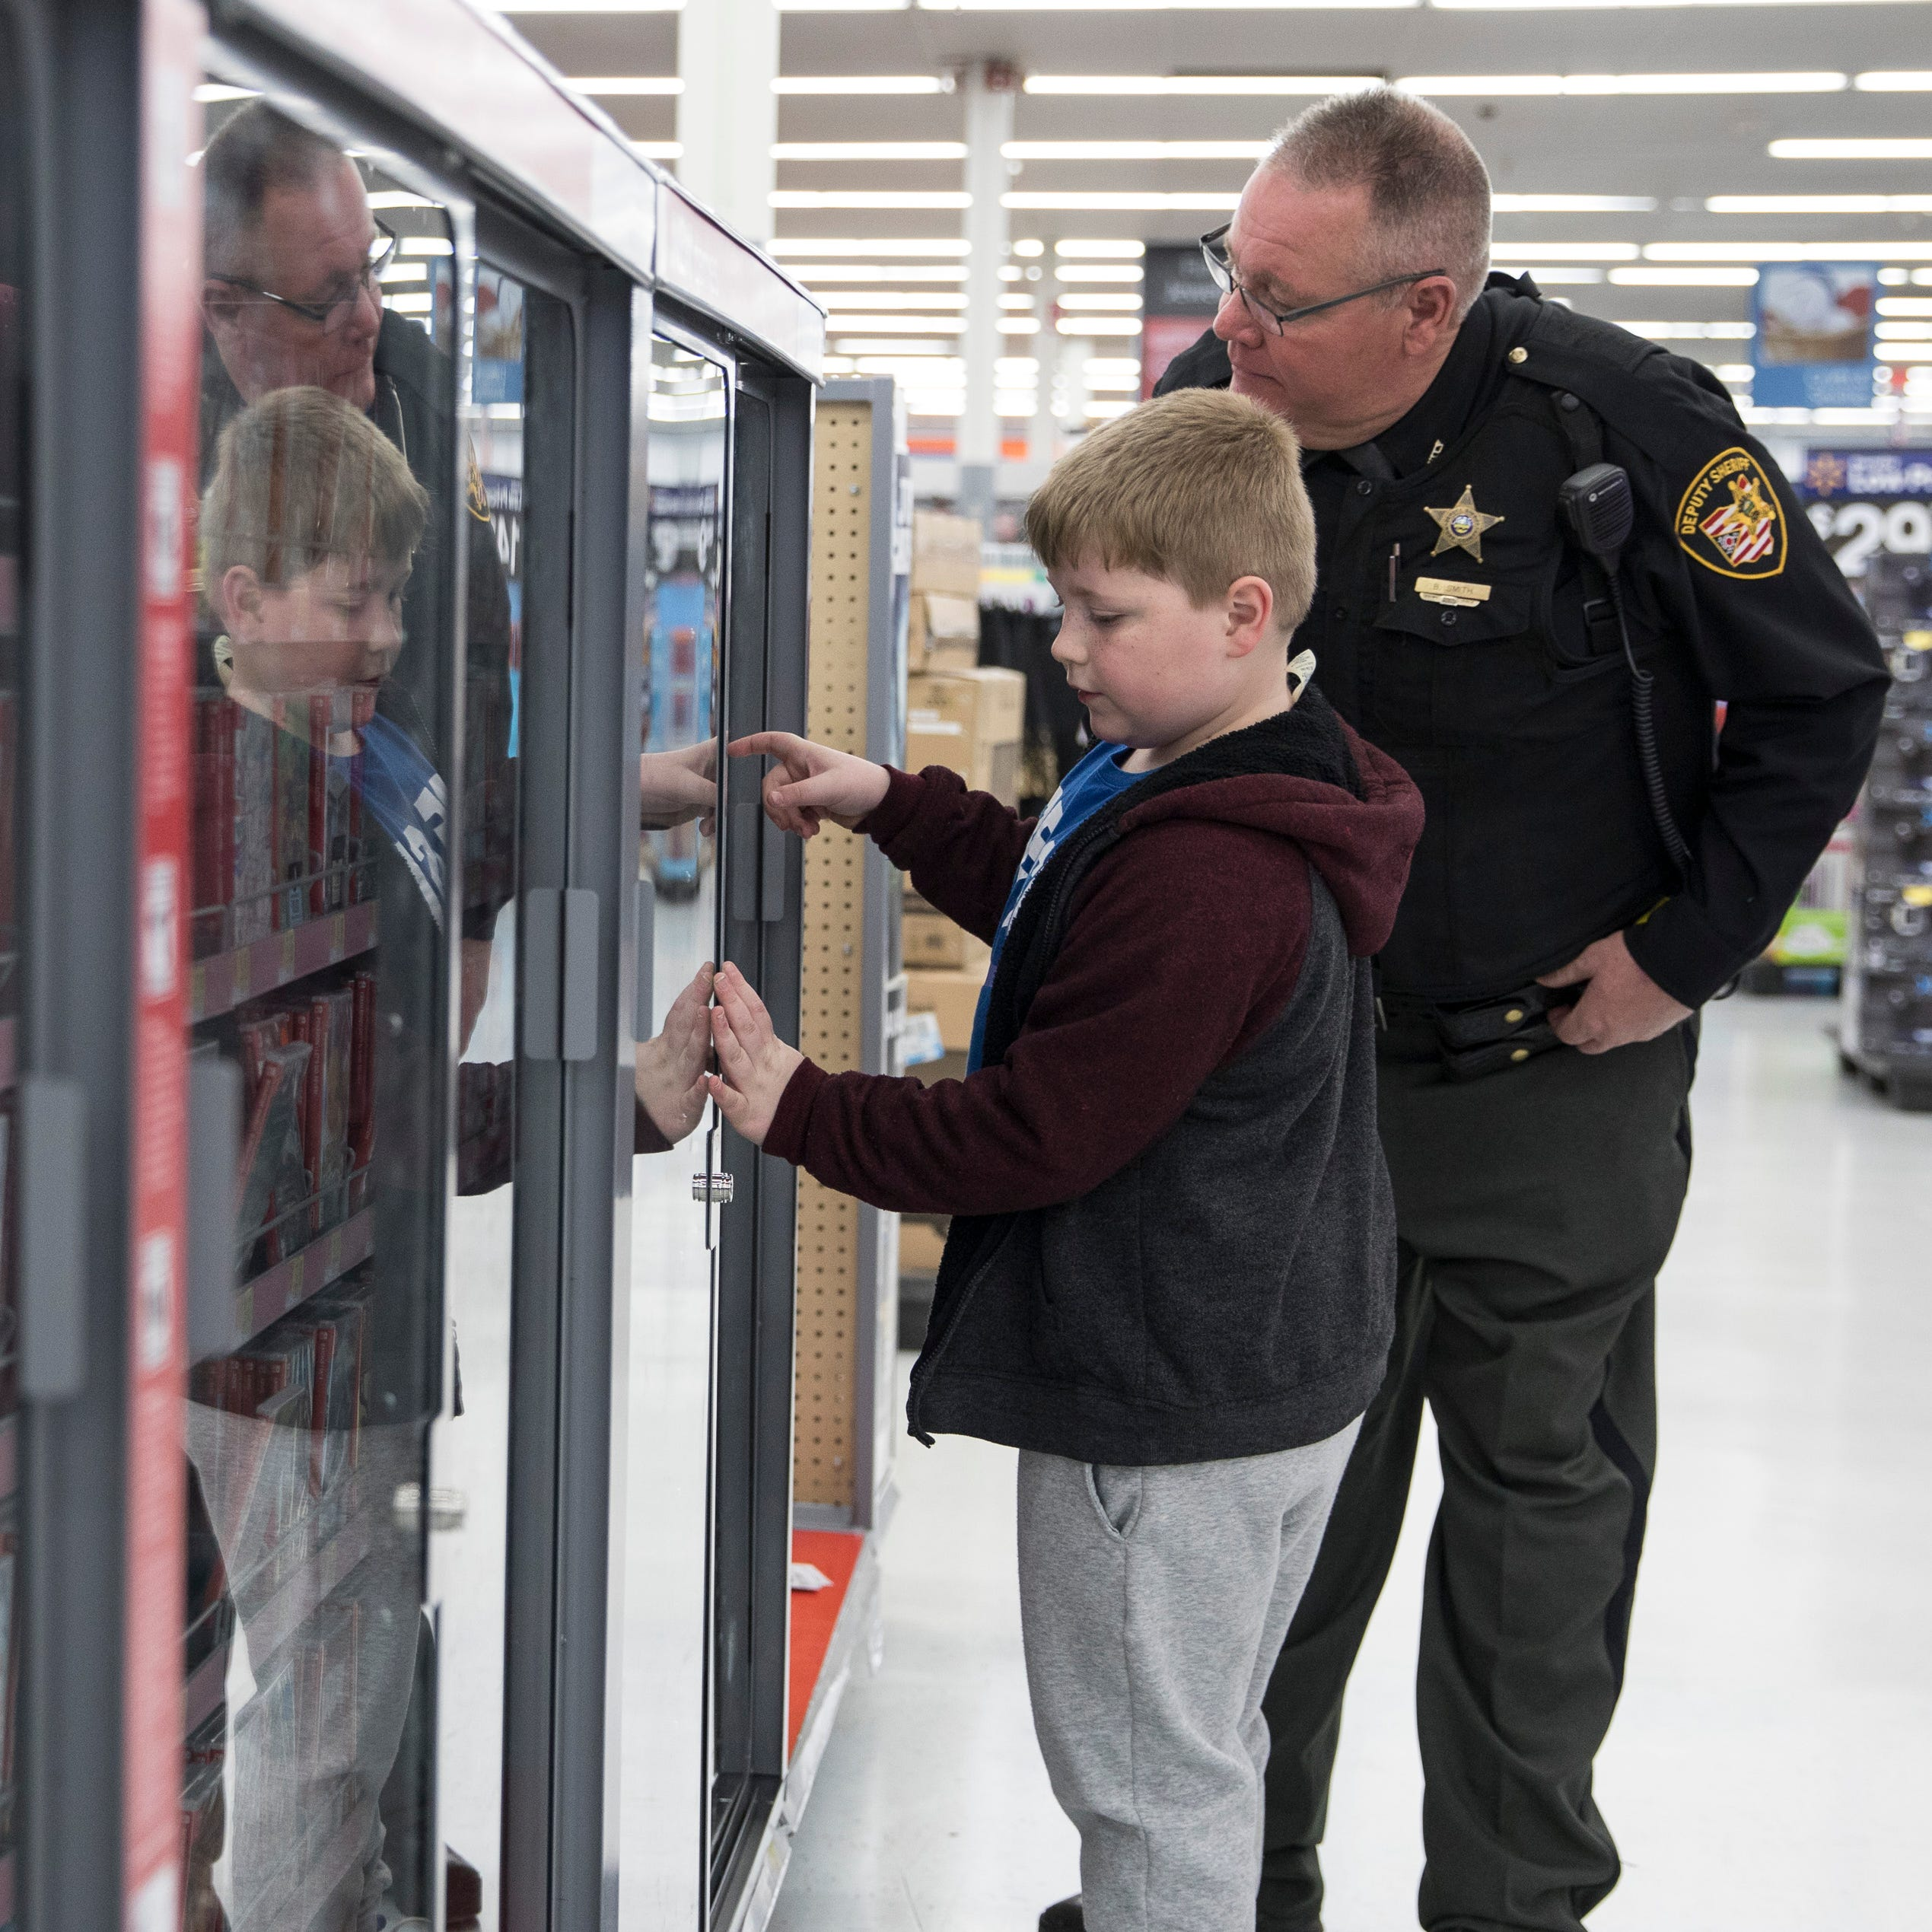 Chillicothe's Shop with a Cop delights kids, officers